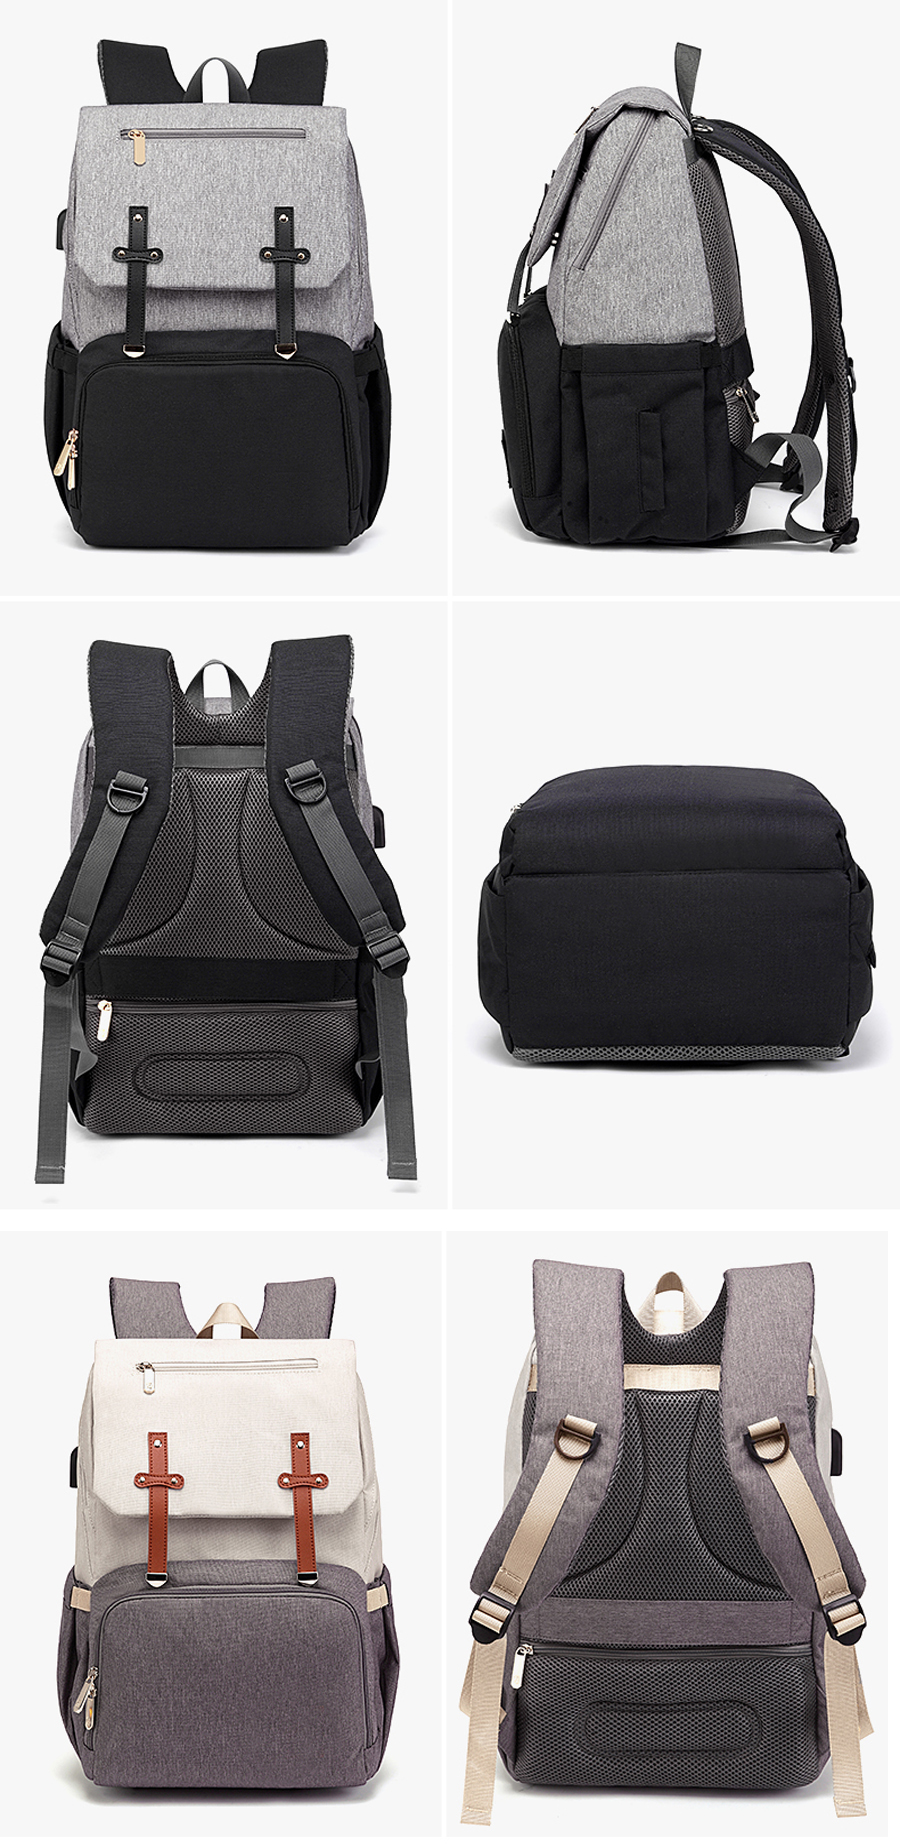 H6384ace6a4674660b8f068de65d041aav Baby Diaper Bag with USB Port Waterproof Nappy Bag Mommy Backpack Laptop Bag Maternity Bags With Rechargeable Bottle Holder